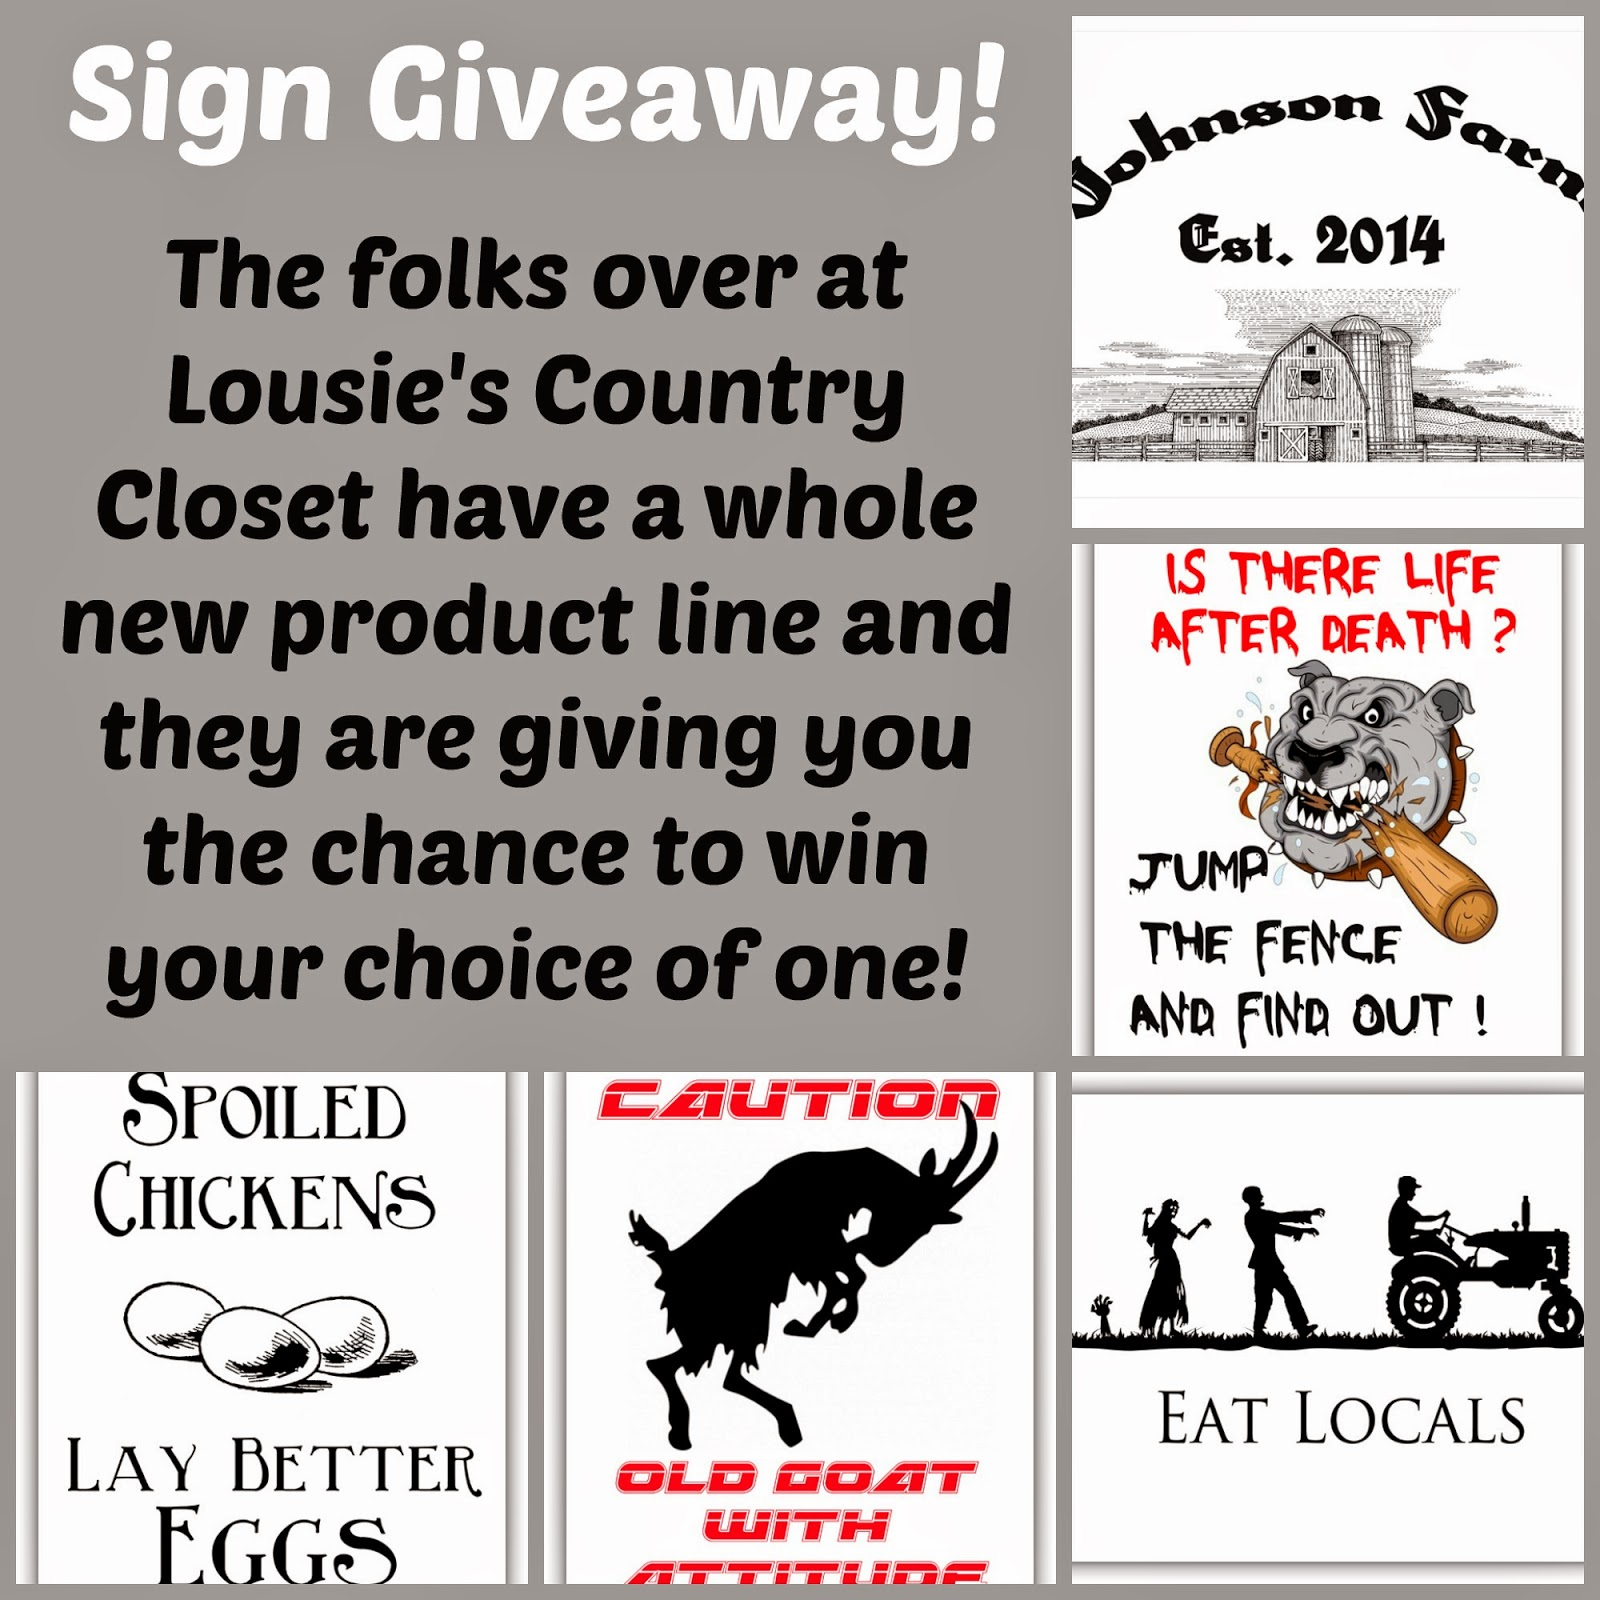 Sign Giveaway from Louise's Country Closet